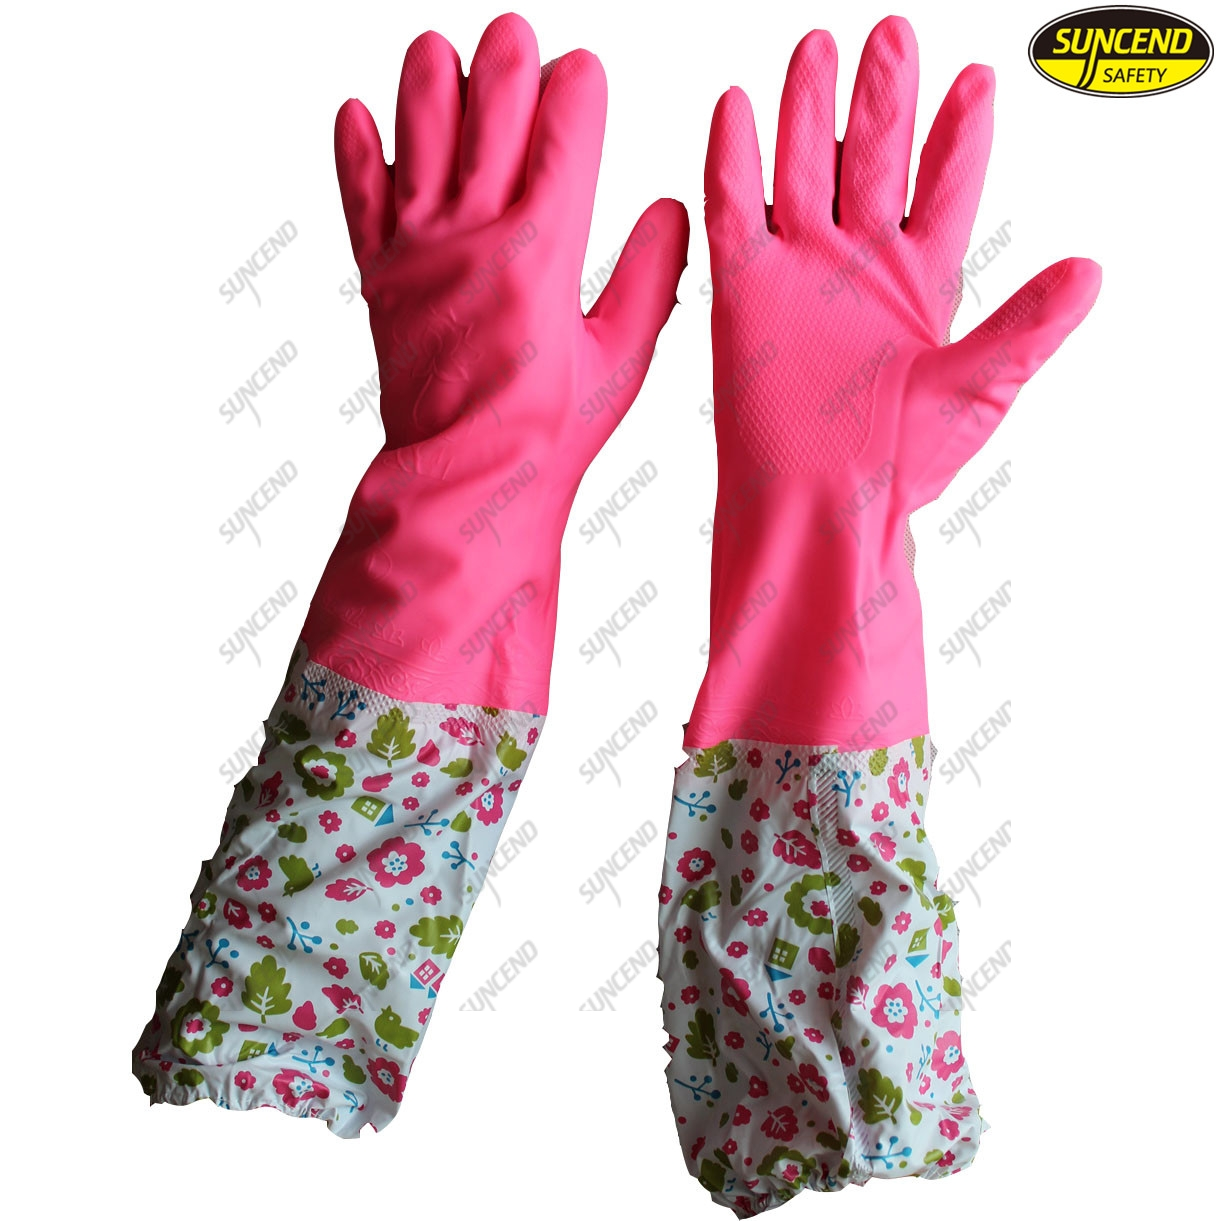 Water resistant latex full coated cleaning household gloves